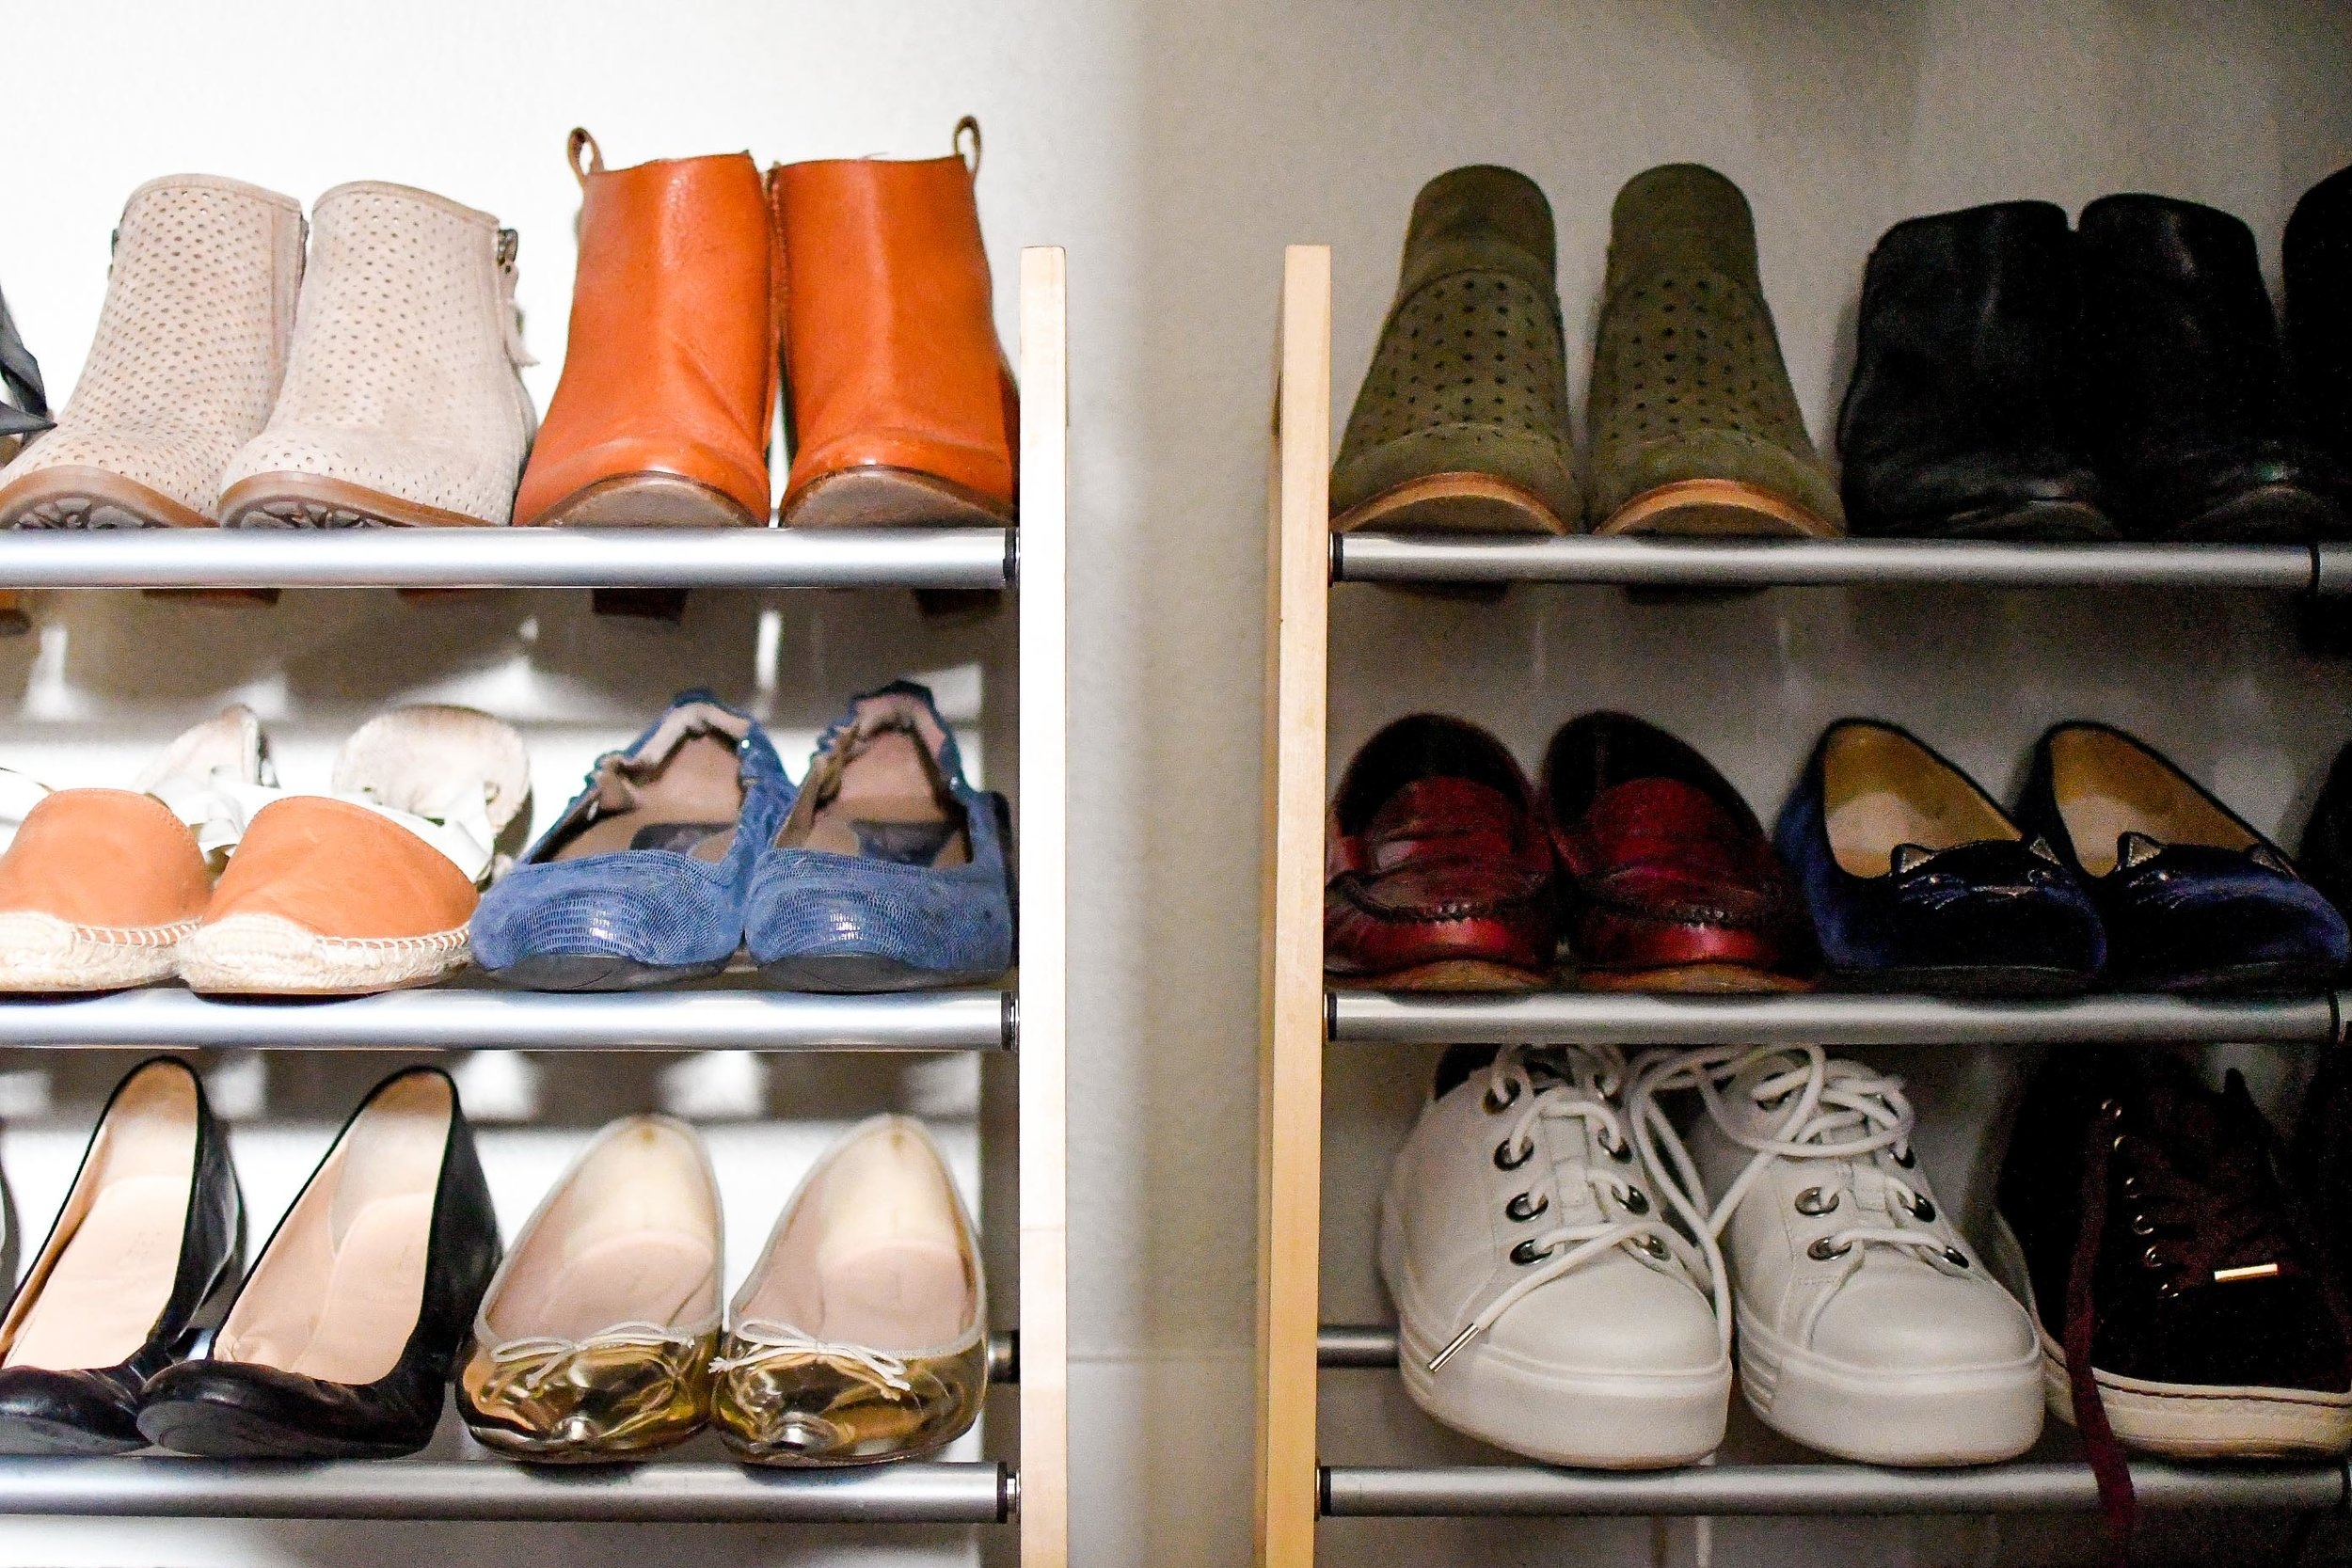 2019 closet inventory: shoe storage — Cotton Cashmere Cat Hair